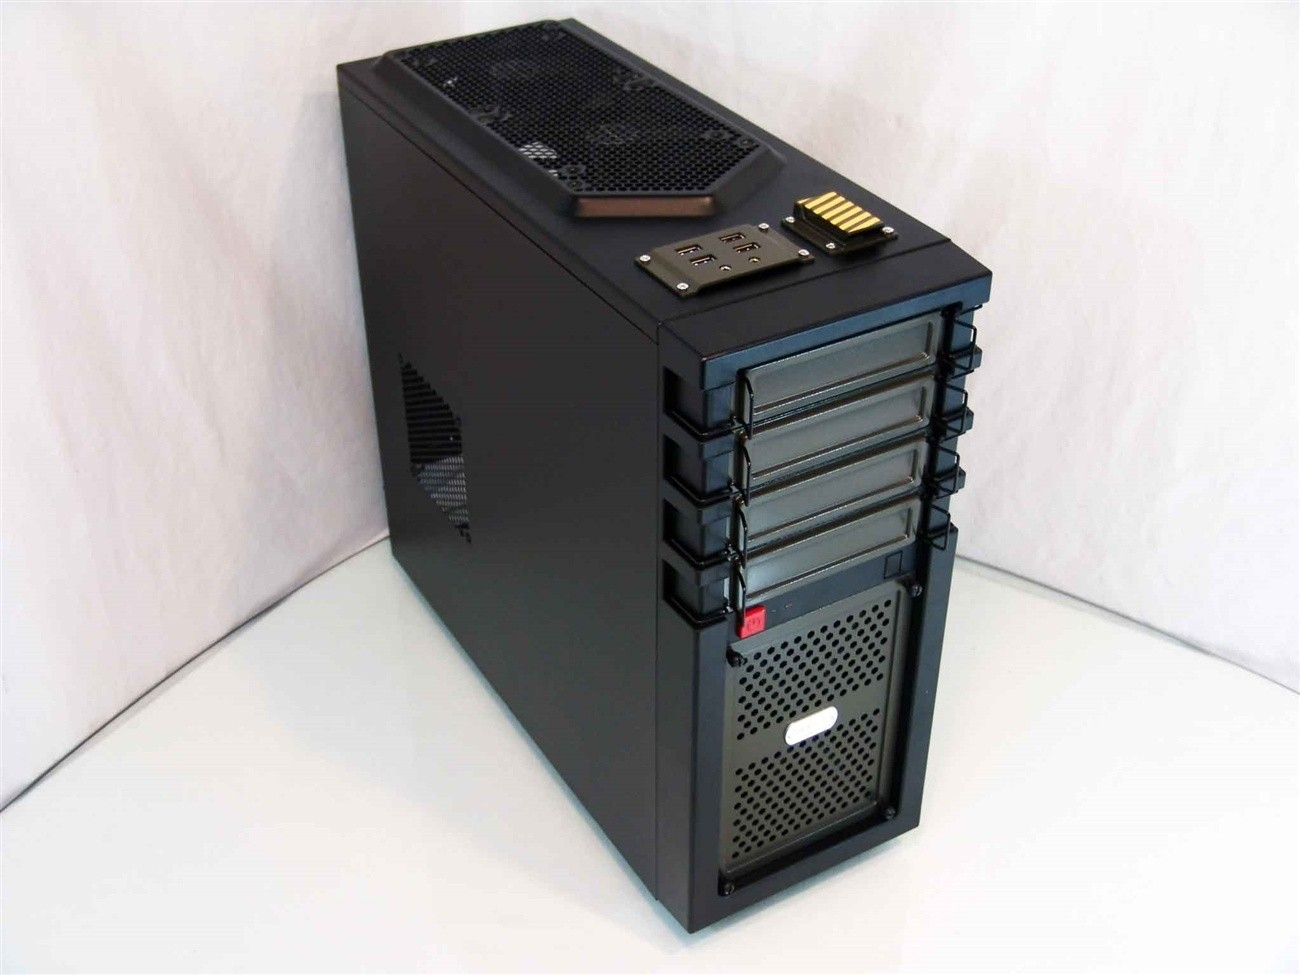 antec_gx700_mid_tower_chassis_review